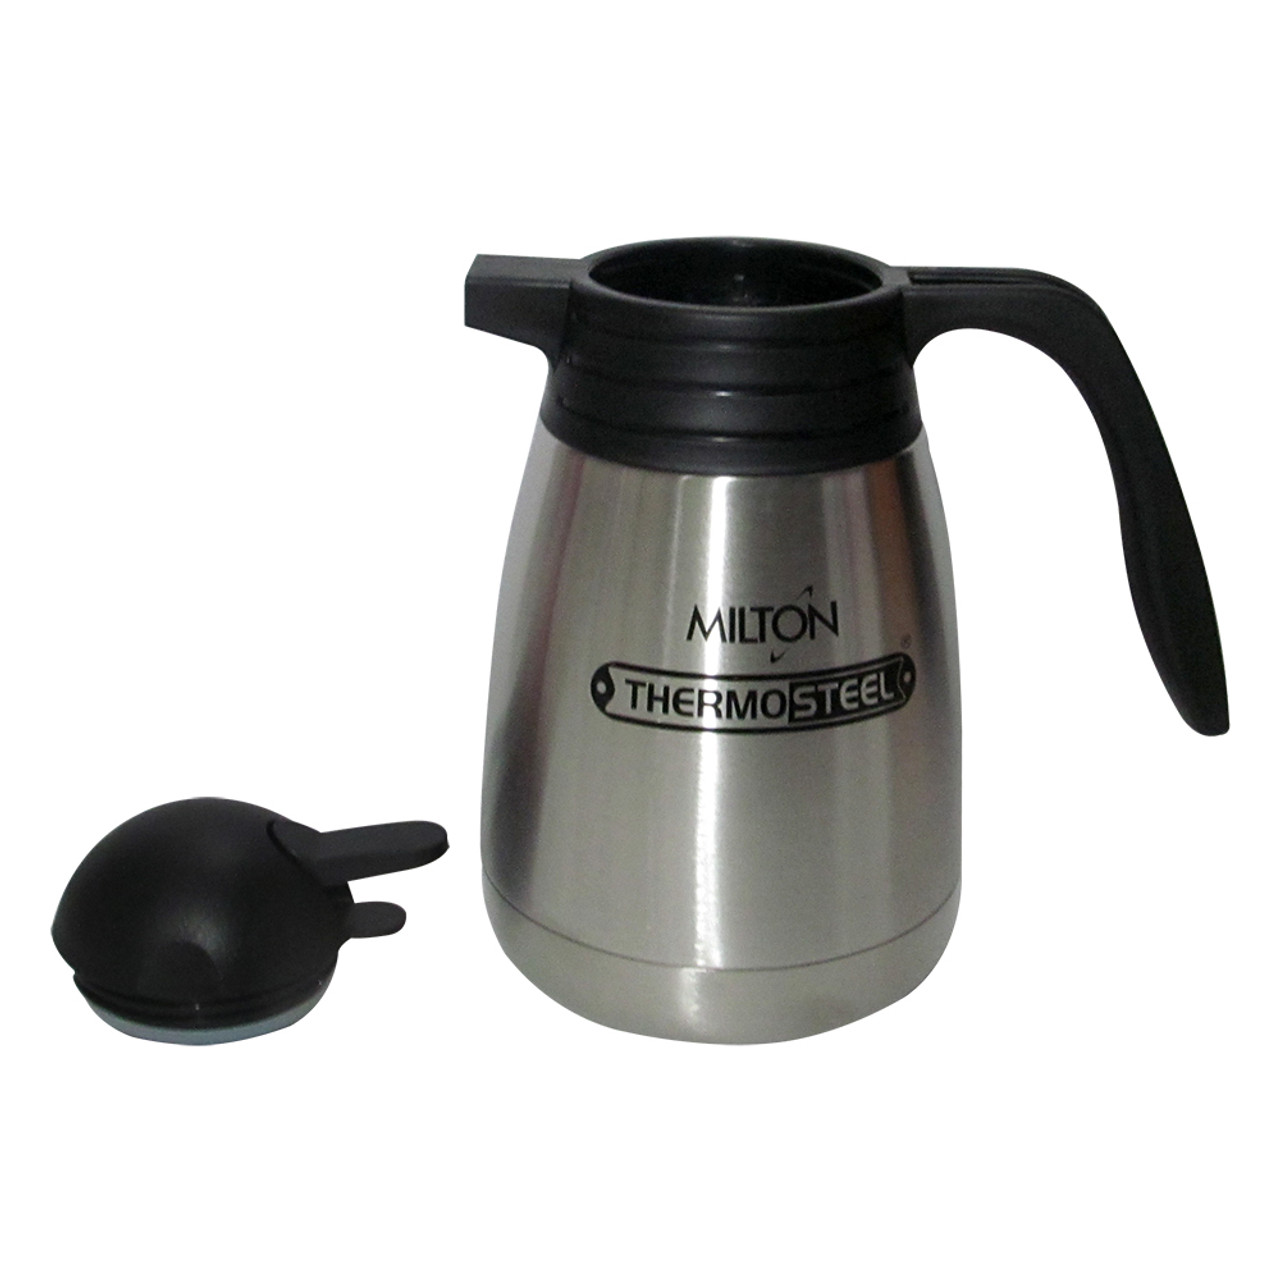 Milton Thermosteel Carafe, 1000 ML Vacuum Insulated Hot And Cold Flask - Image 2